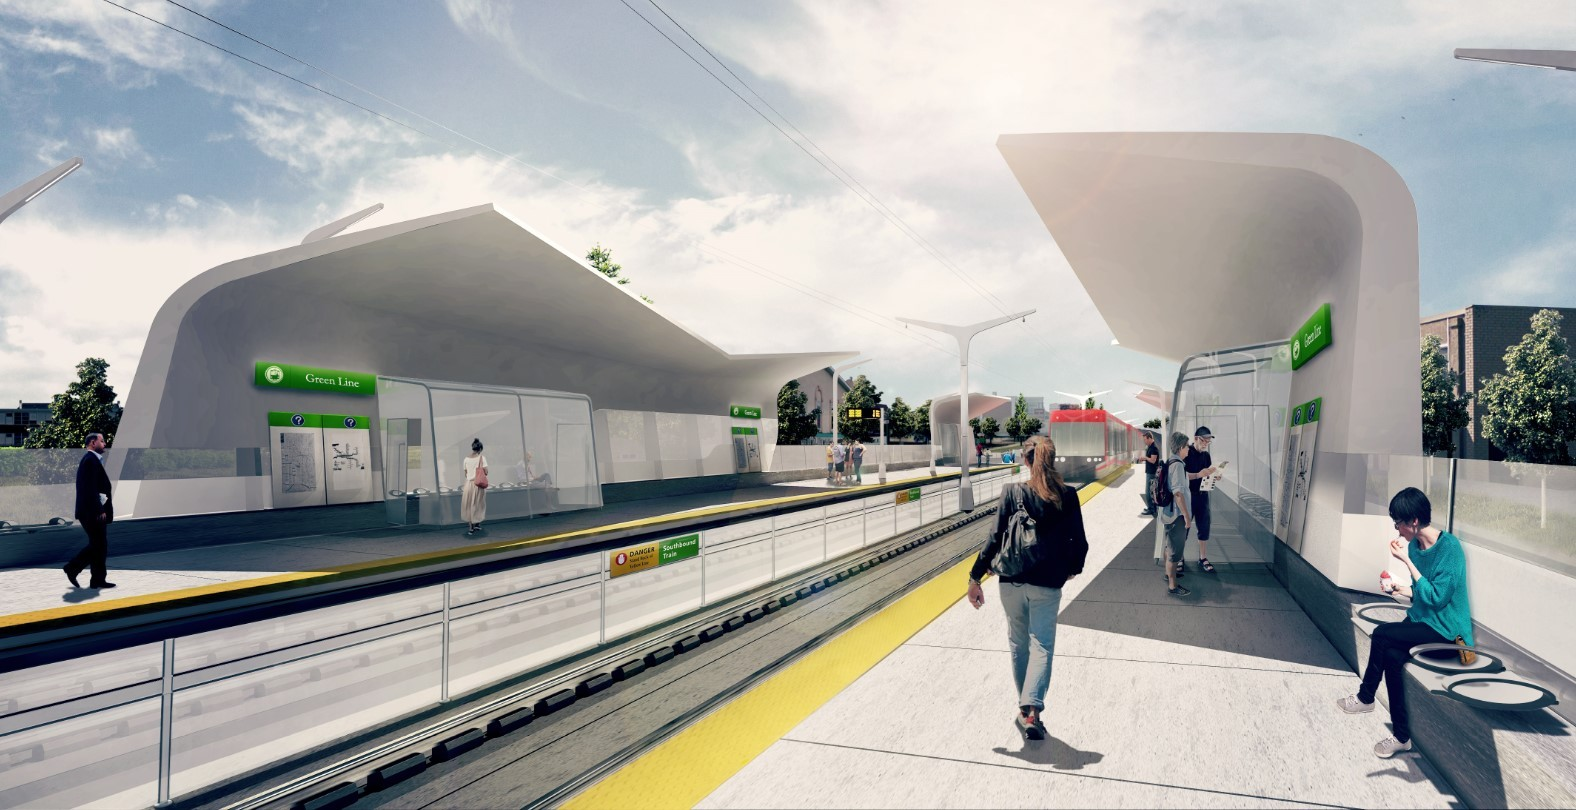 Construction on the Green Line LRT is set to begin in 2020 with first passengers hopping aboard in 2026.